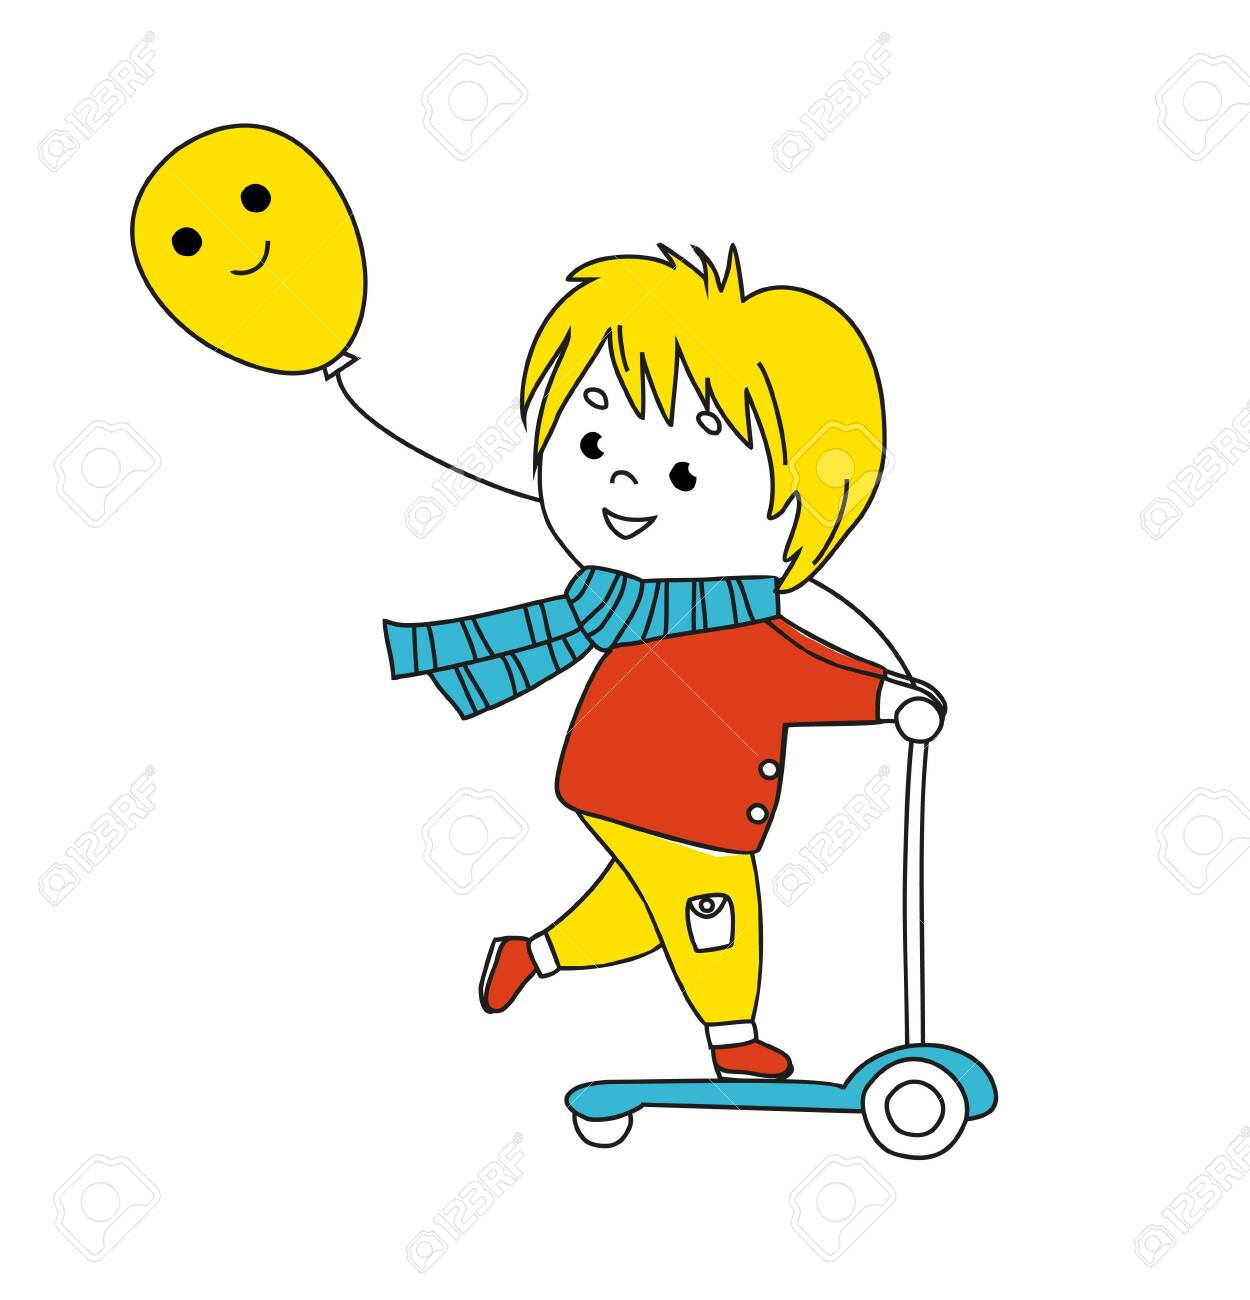 Smiling little boy on kick scooter. Funny colorful Illustration. Vector - 140409796